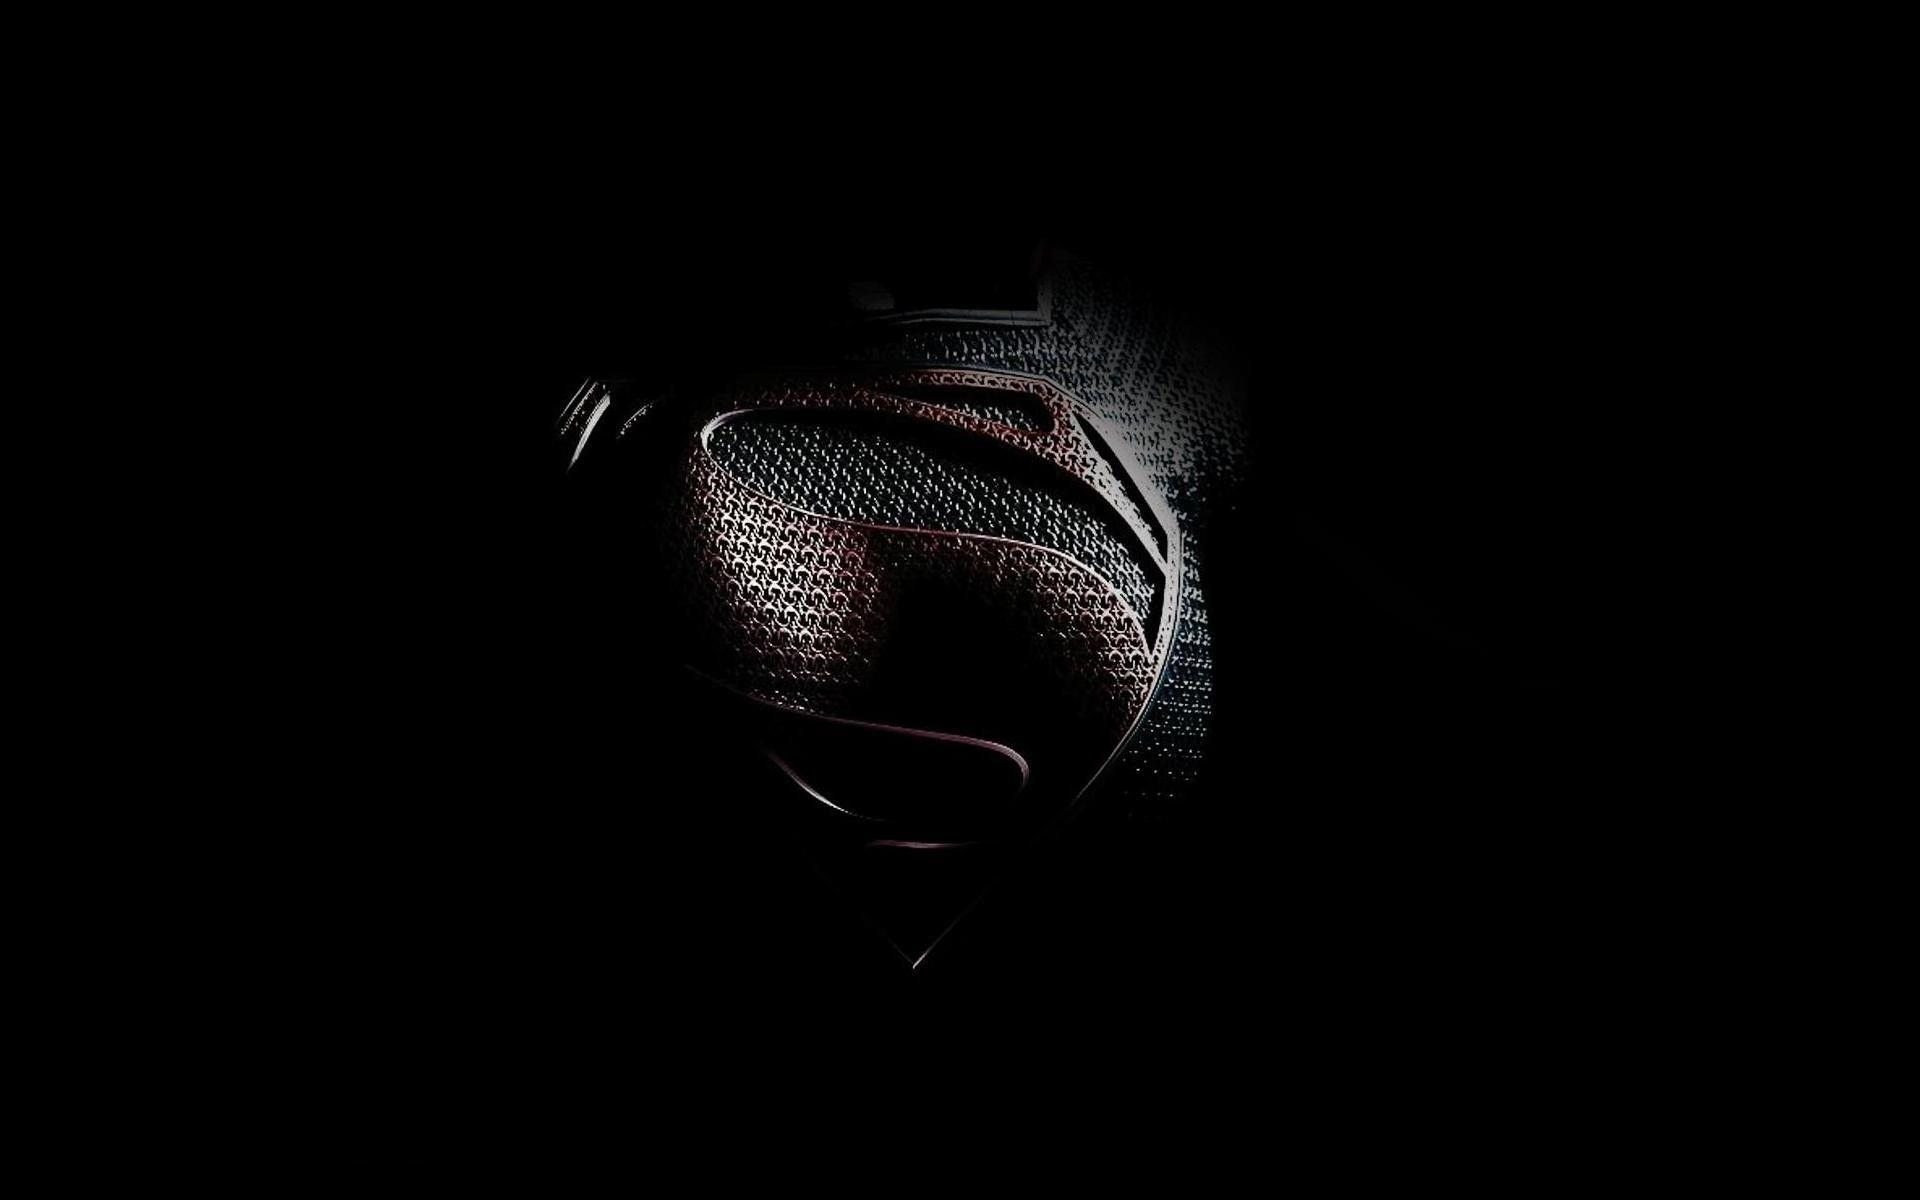 Wallpapers For > Superman Wallpapers Hd Black